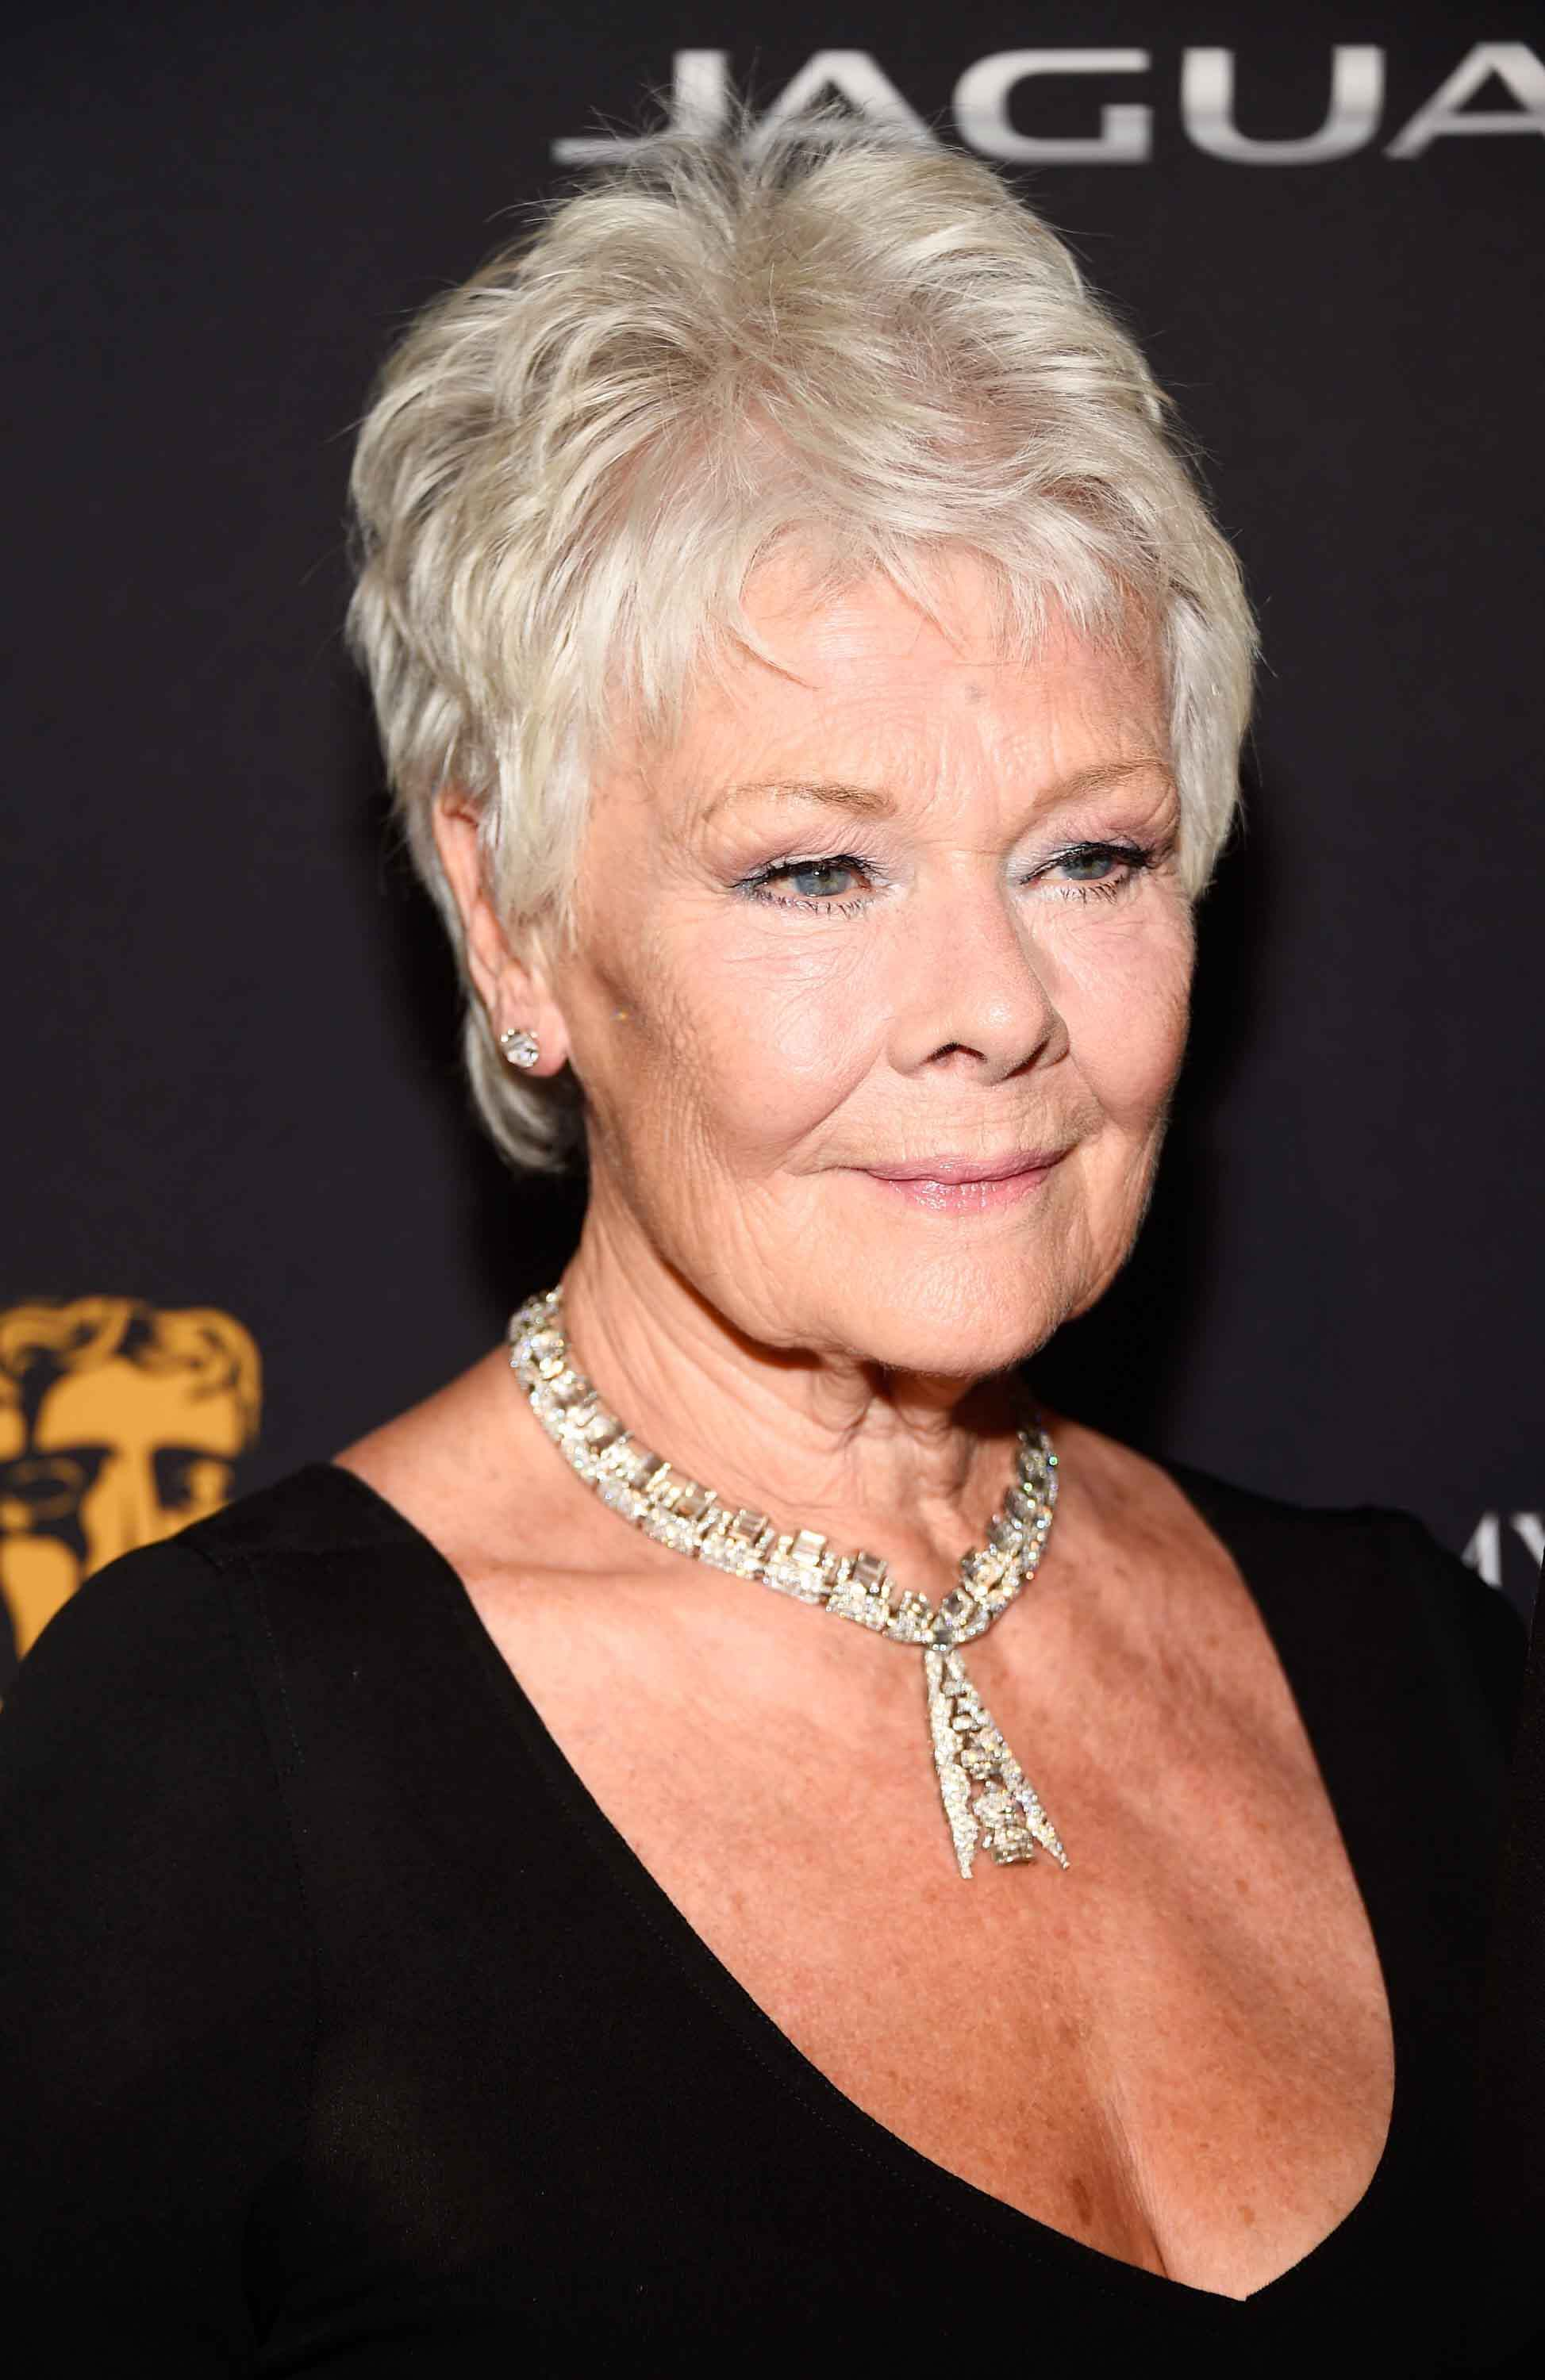 15 Doubts About Judi Dench Hairstyle You Should Clarify | judi dench ...